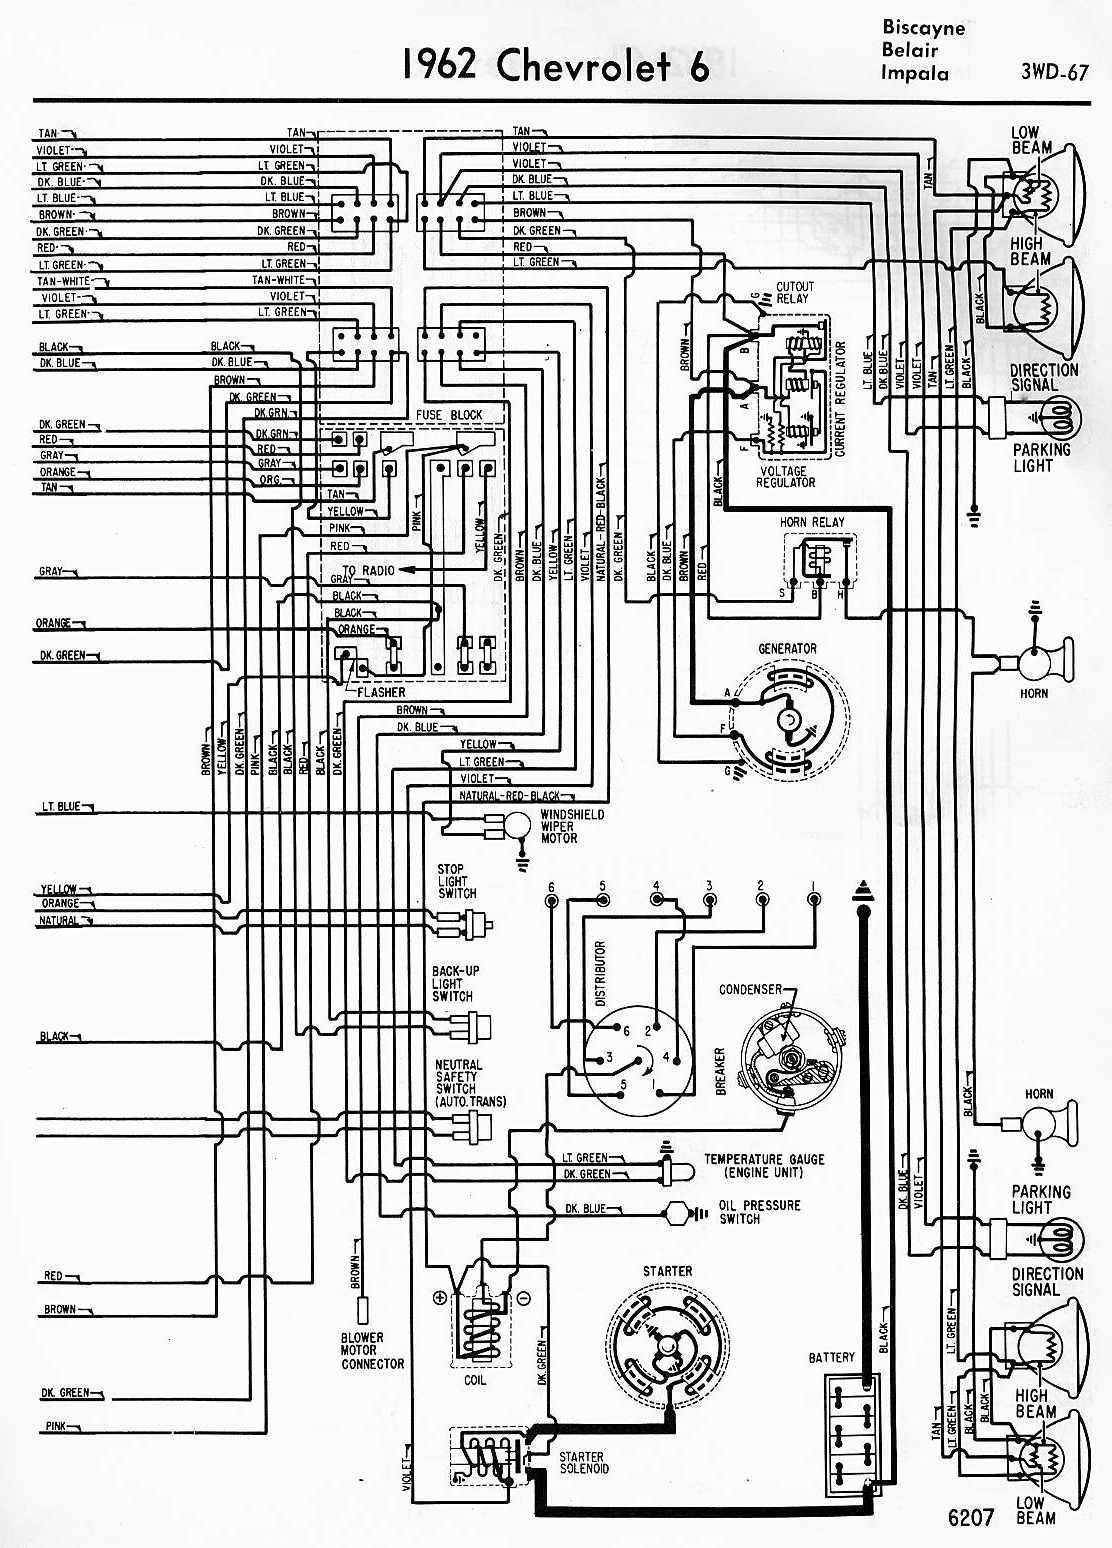 Chevrolet Ignition Switch Wiring Diagram on 2003 chevy silverado ignition wiring diagram, chevrolet battery diagram, 1965 chevy truck wiring diagram, chevrolet headlight switch wiring diagram, 1957 chevy ignition wiring diagram, 57 chevy ignition wiring diagram, universal ignition switch diagram, 2005 gmc sierra 1500 wiring diagram, 1984 chevy wiring diagram, 3 wire ignition switch diagram, chevy 350 ignition wiring diagram, 1999 chevy suburban wiring diagram, distributor wiring diagram, 1965 chevy ignition switch diagram, 1946 chevy truck wiring diagram, impala wiring diagram, chevy s10 wiring diagram, chevy fuel pump wiring diagram, chevy malibu ignition switch diagram, 2000 chevy silverado ignition wiring diagram,